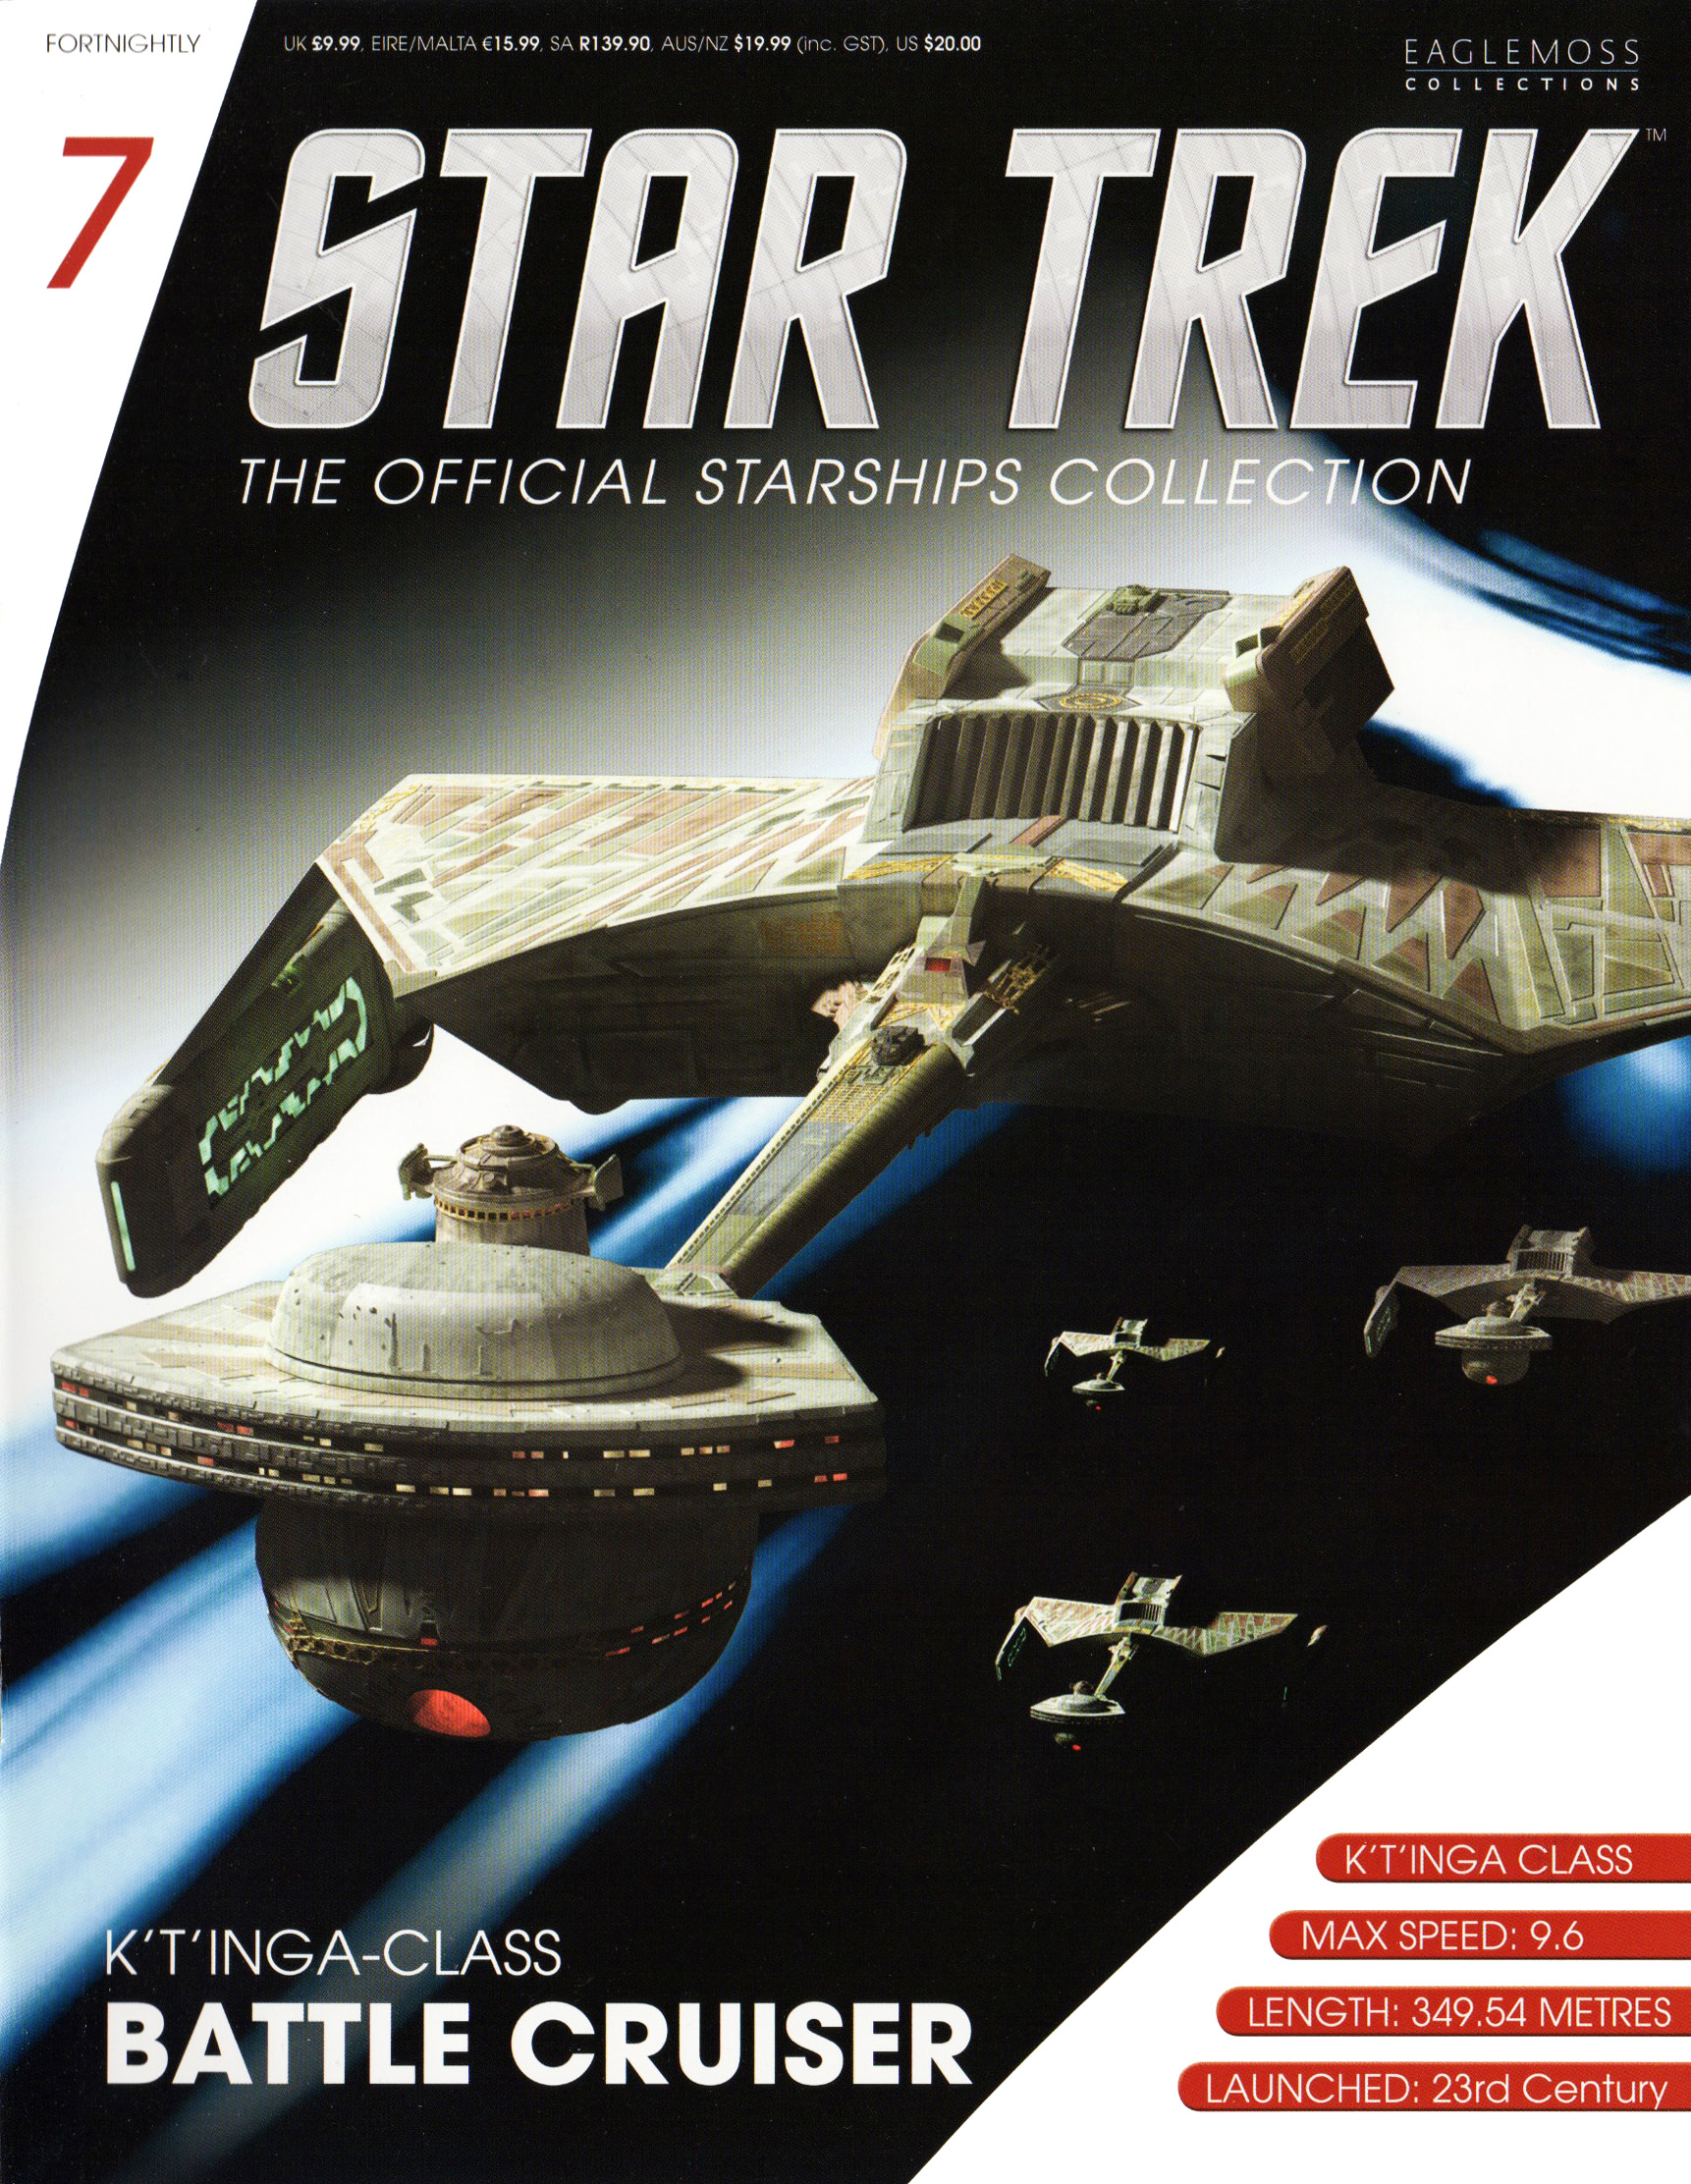 Eaglemoss Star Trek Starships Issue 7